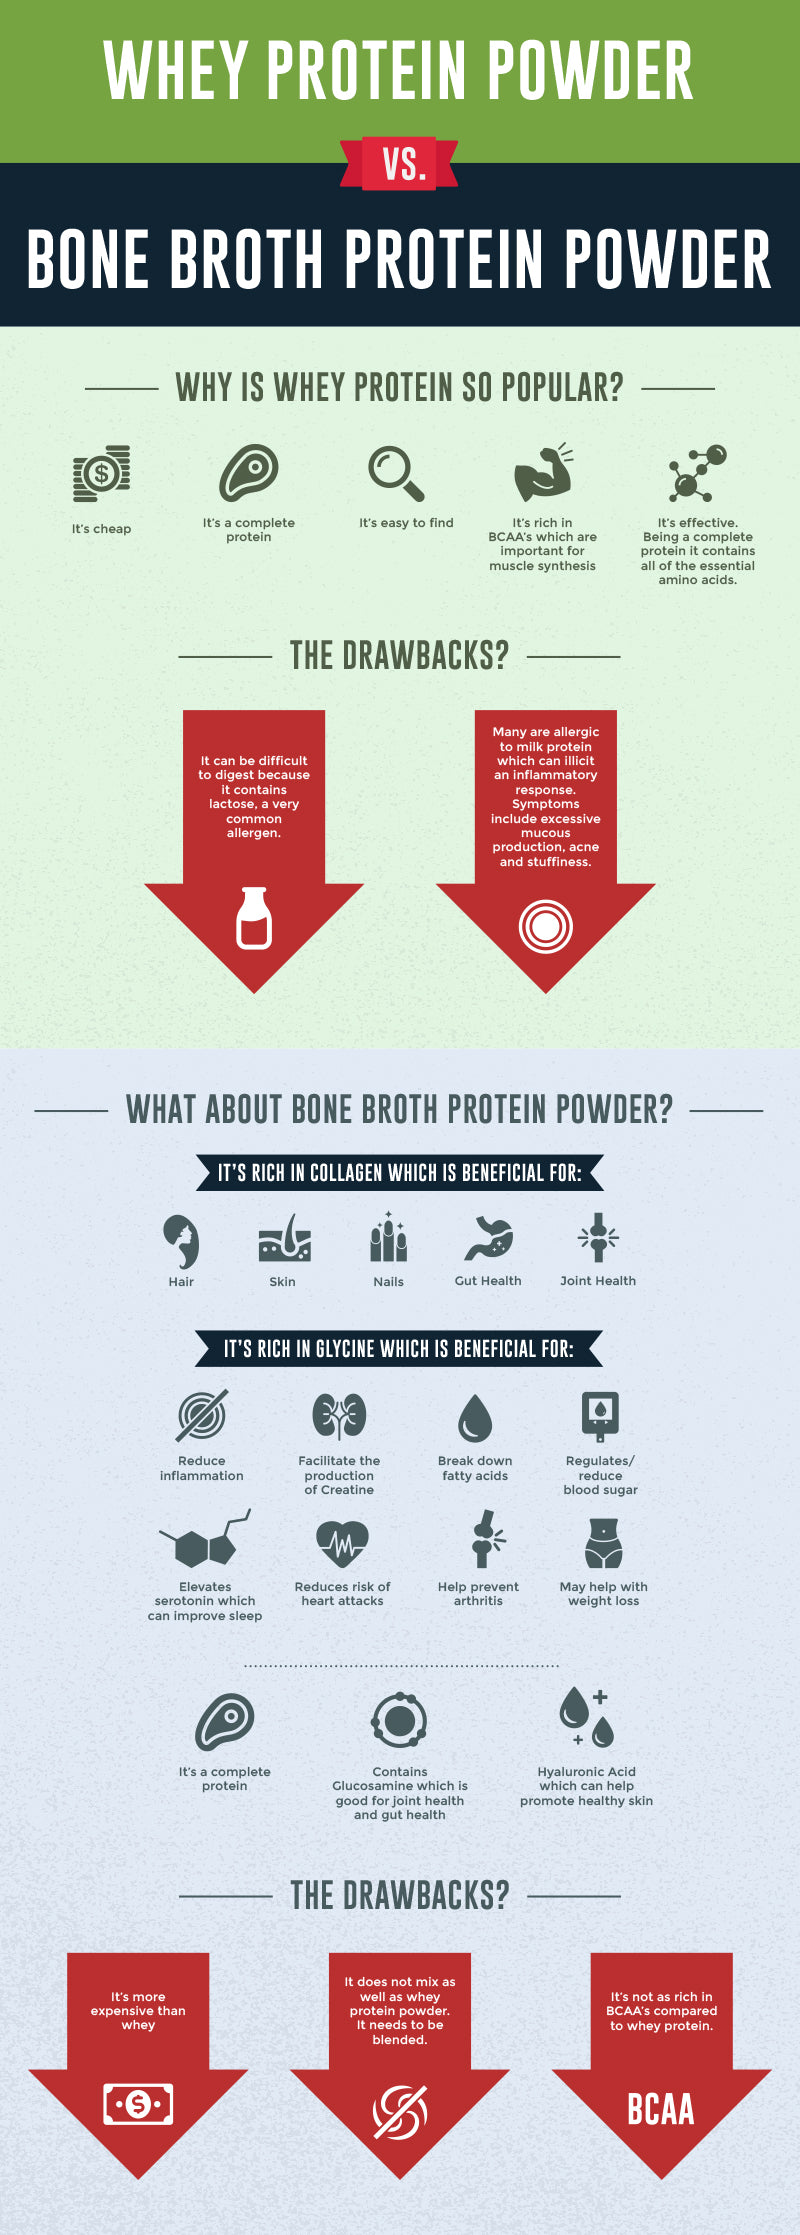 Bone Broth Protein Powder Vs. Whey Protein Powder